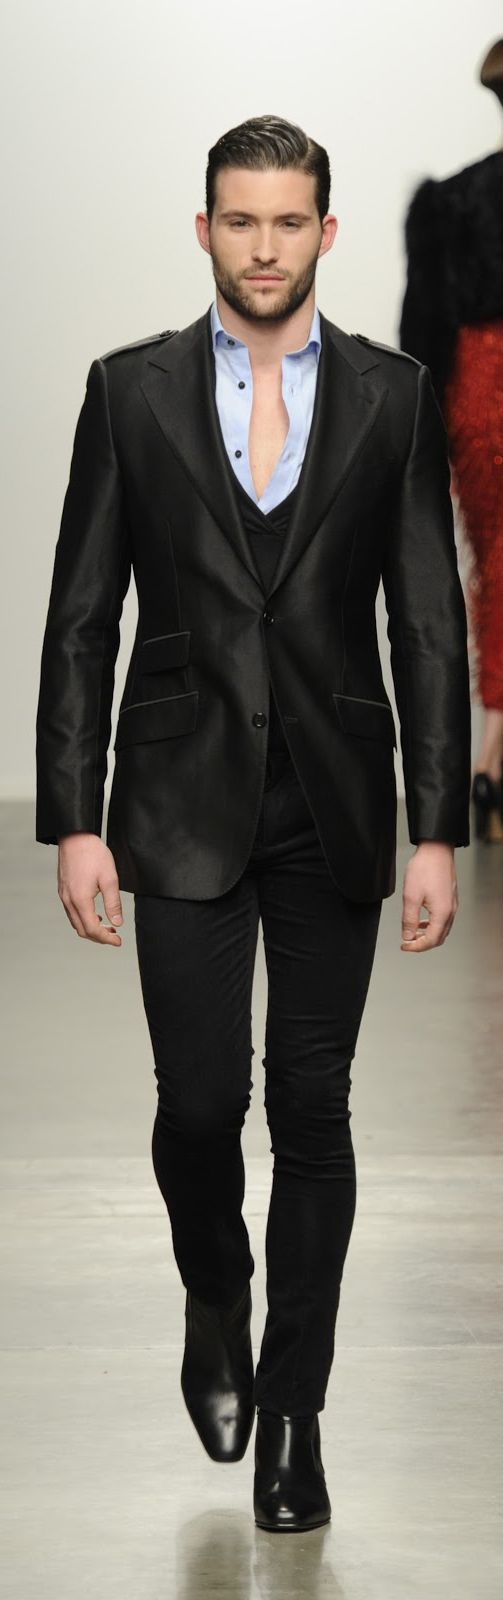 Modern Suit.  Love the slim cut, the pockets, and the sheen.  Absolute perfection.